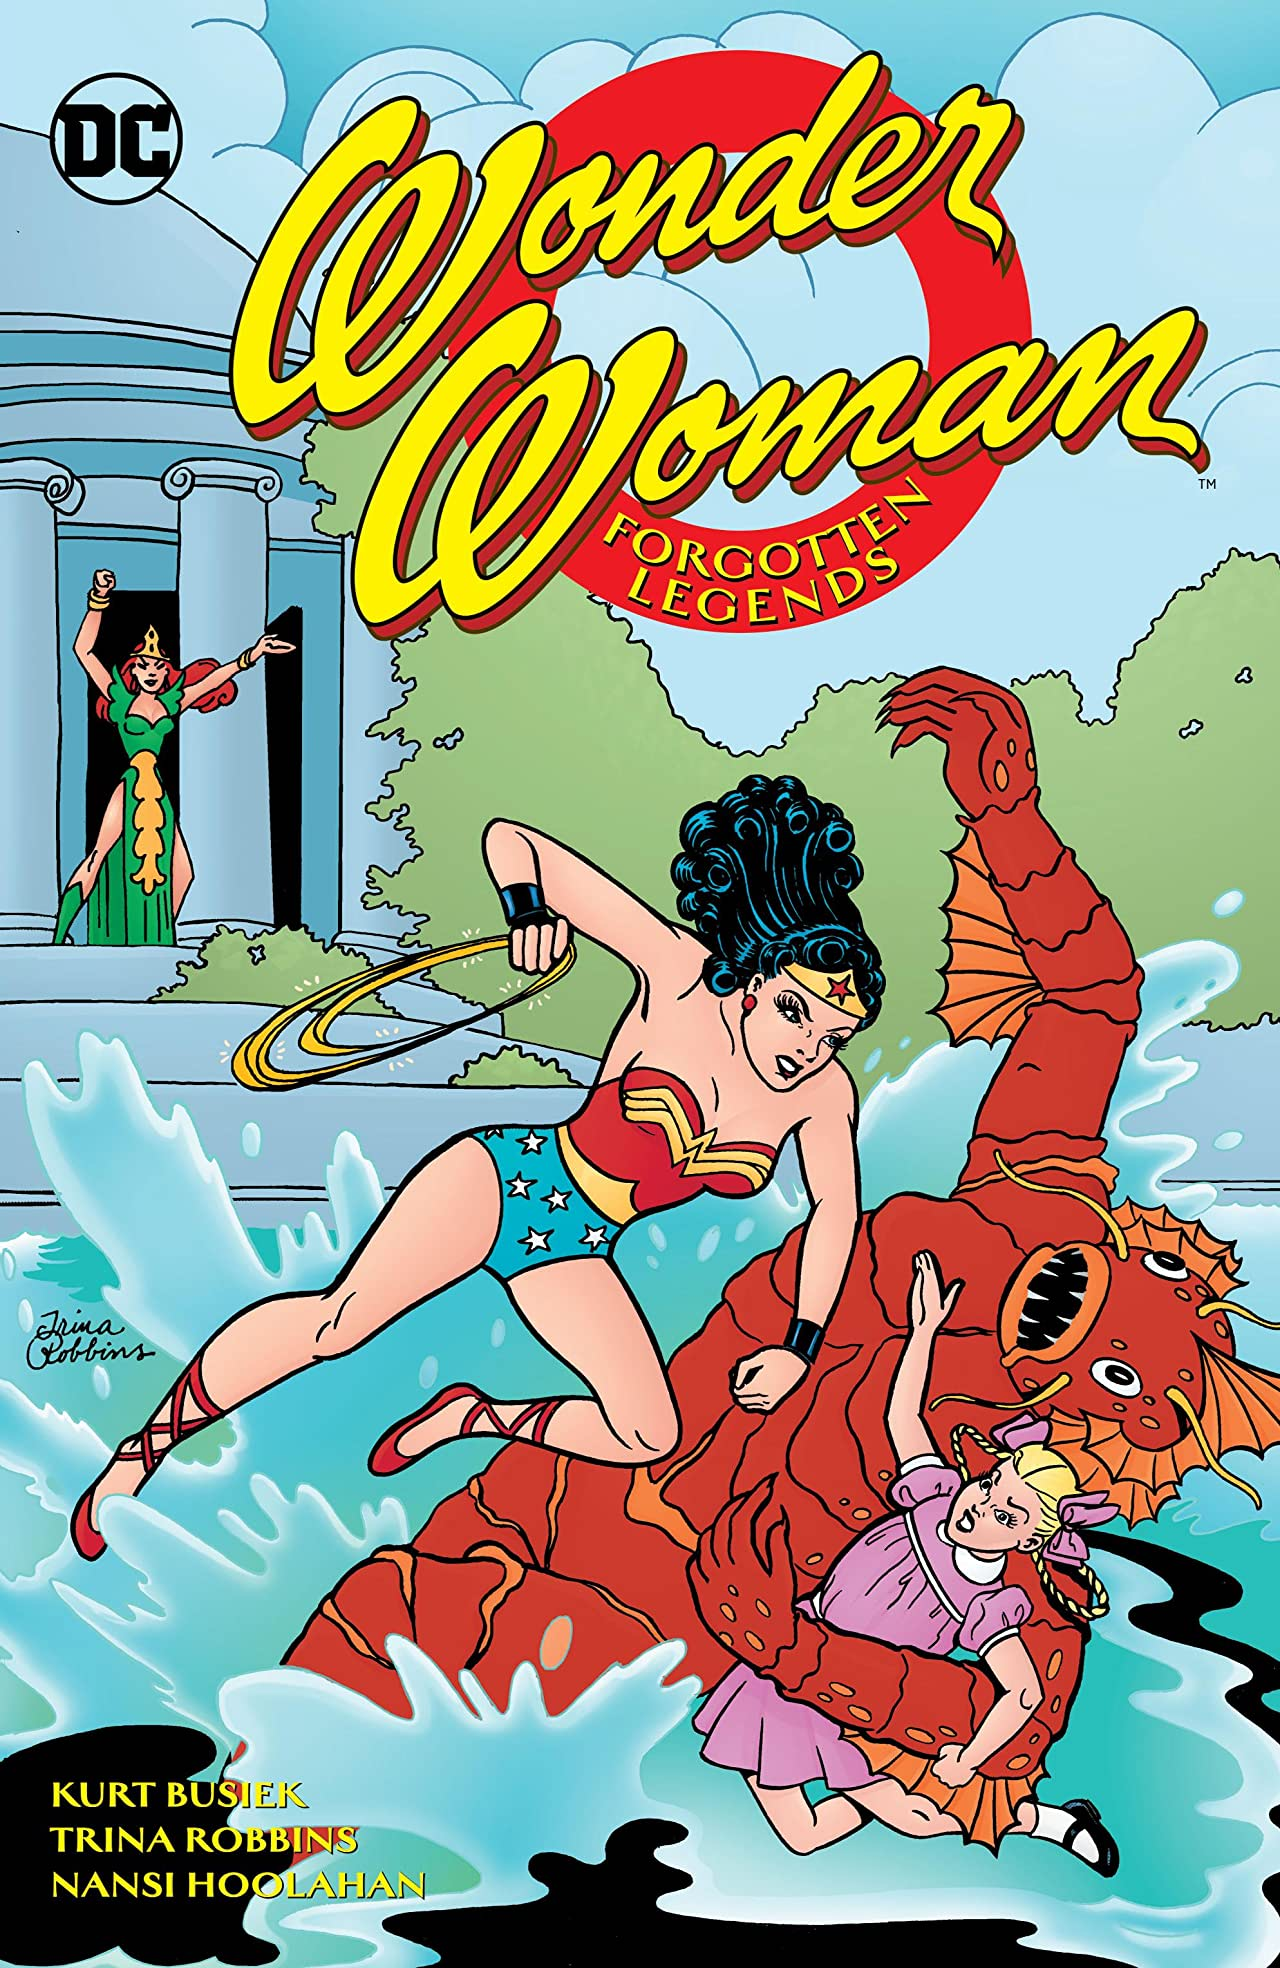 Wonder Woman: Forgotten Legends